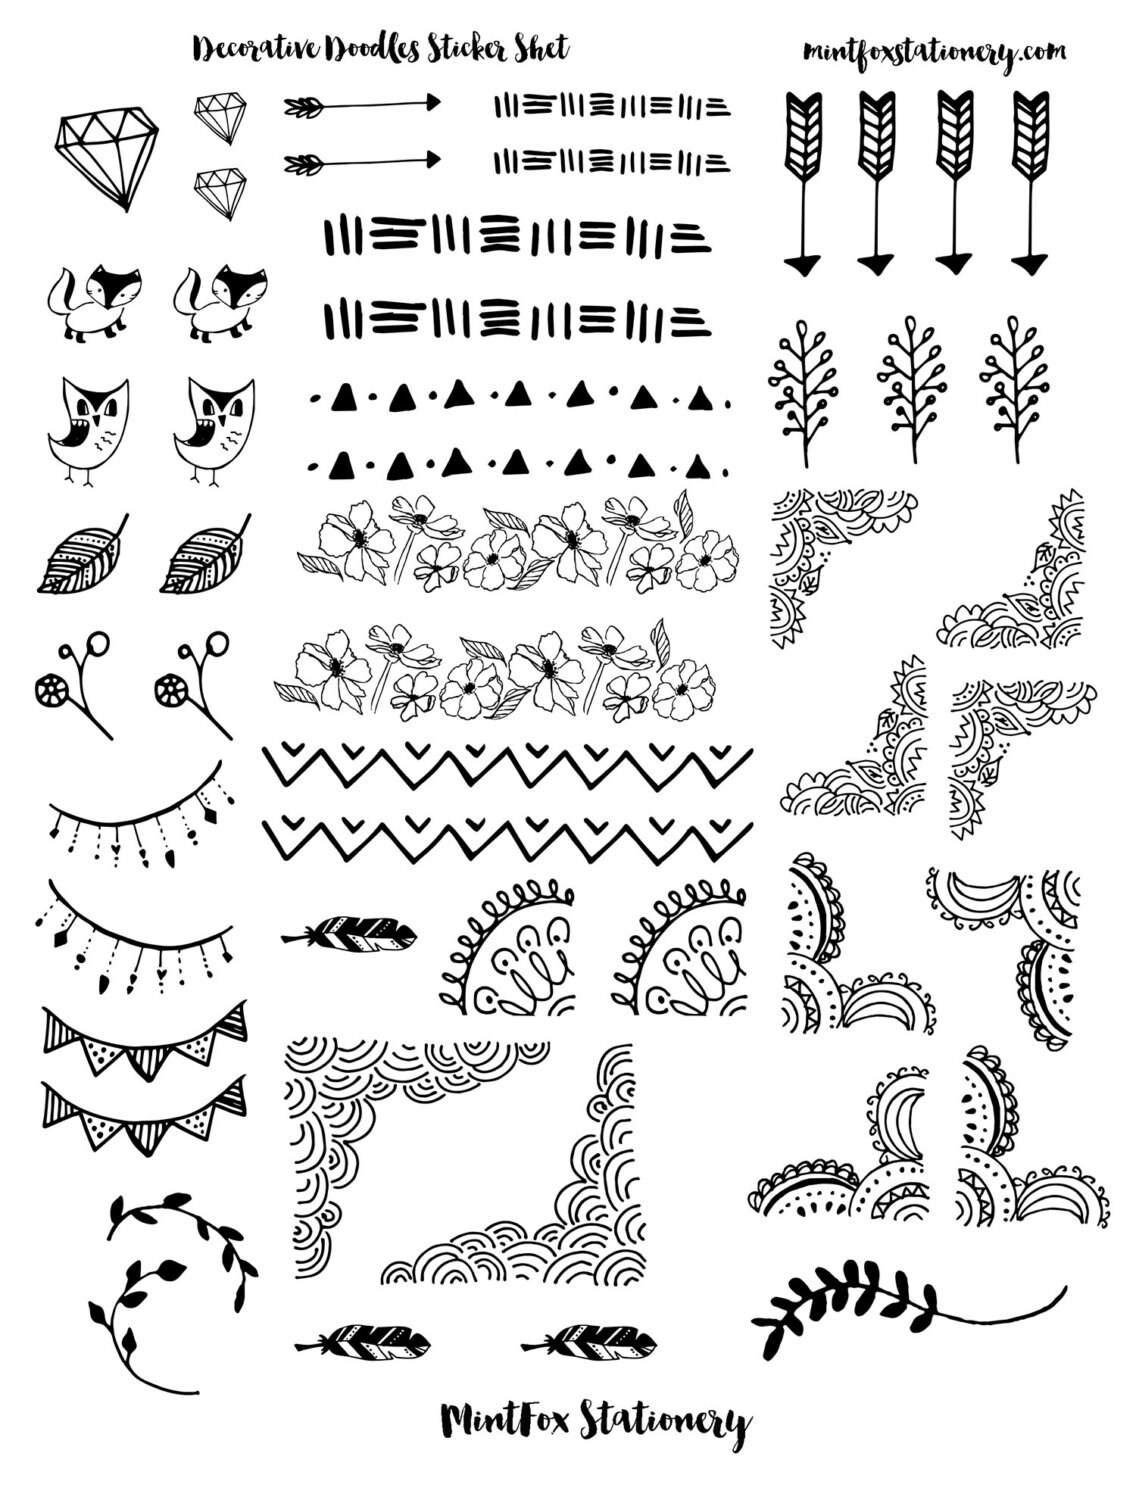 Decorative Doodles Printable Sticker Sheet Bullet Journal